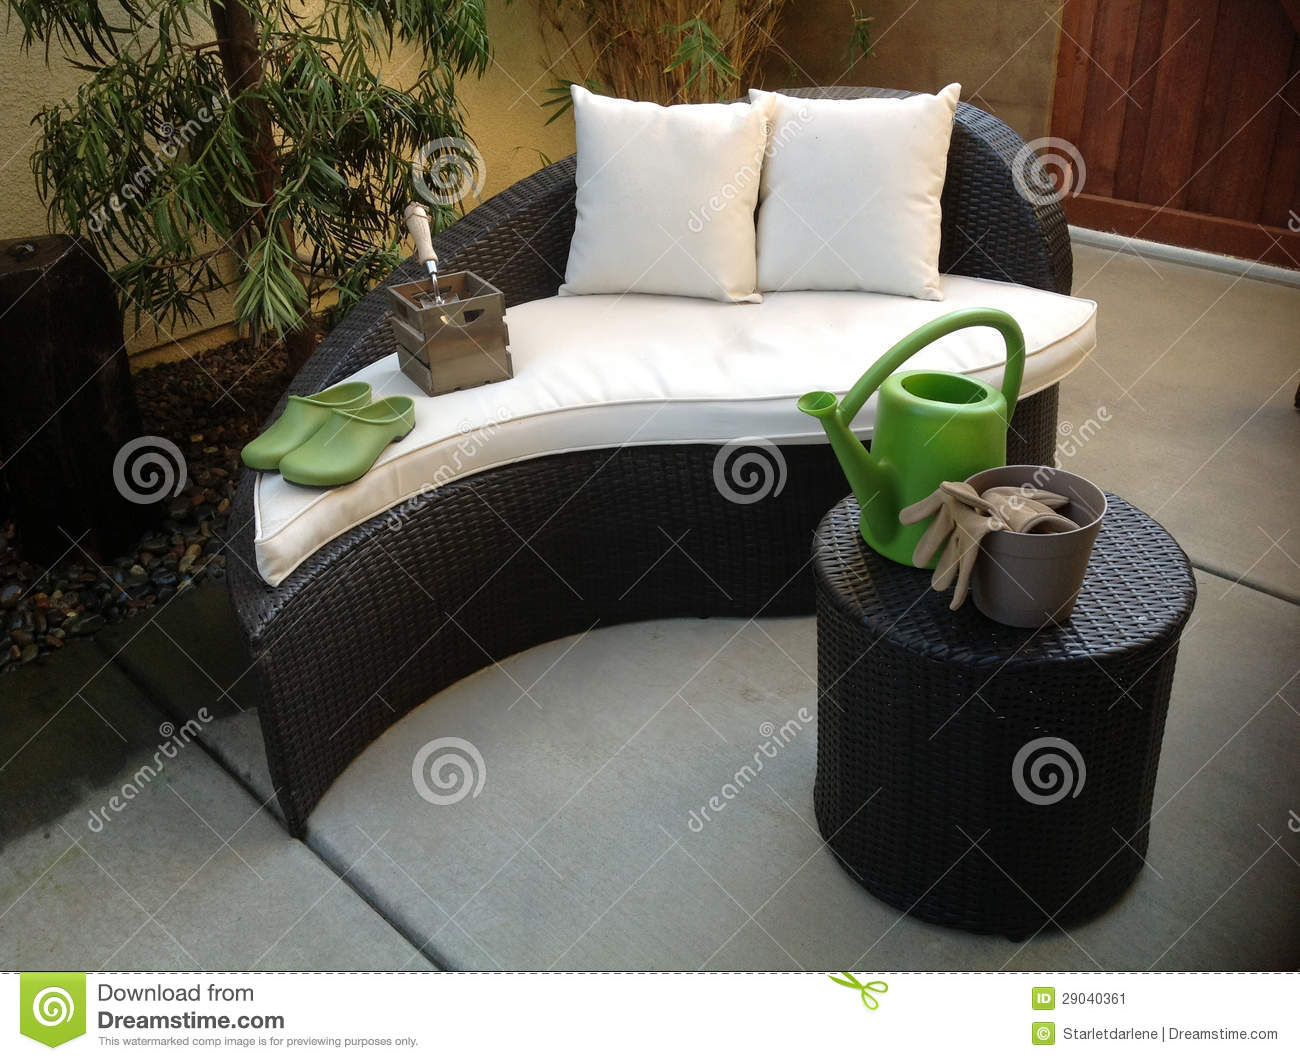 2 588 gardening patio furniture photos free royalty free stock photos from dreamstime